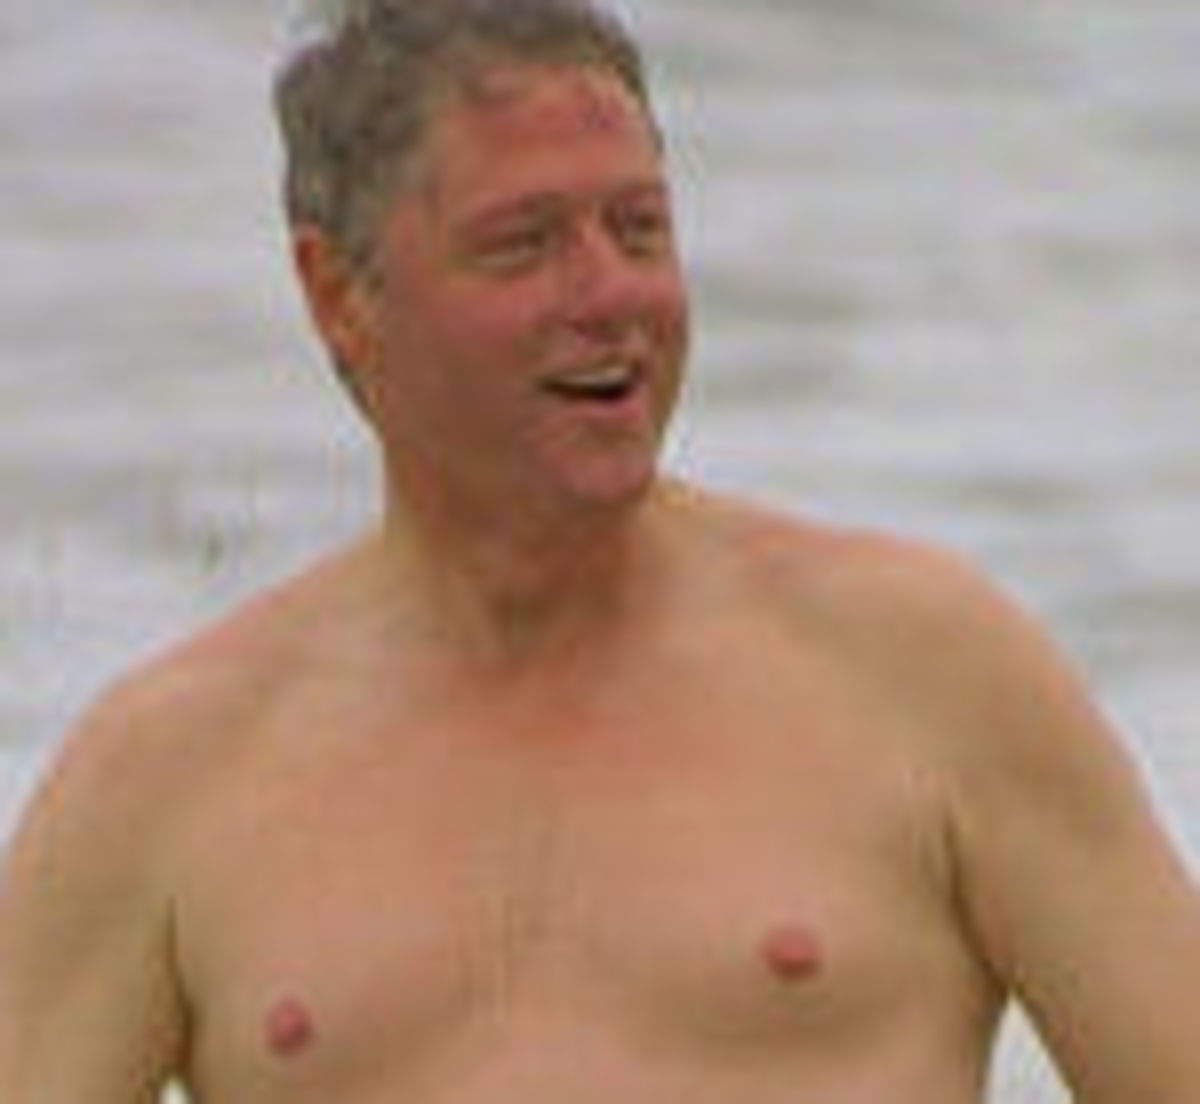 The older and chubbier Bill Clinton has similar shoulders.